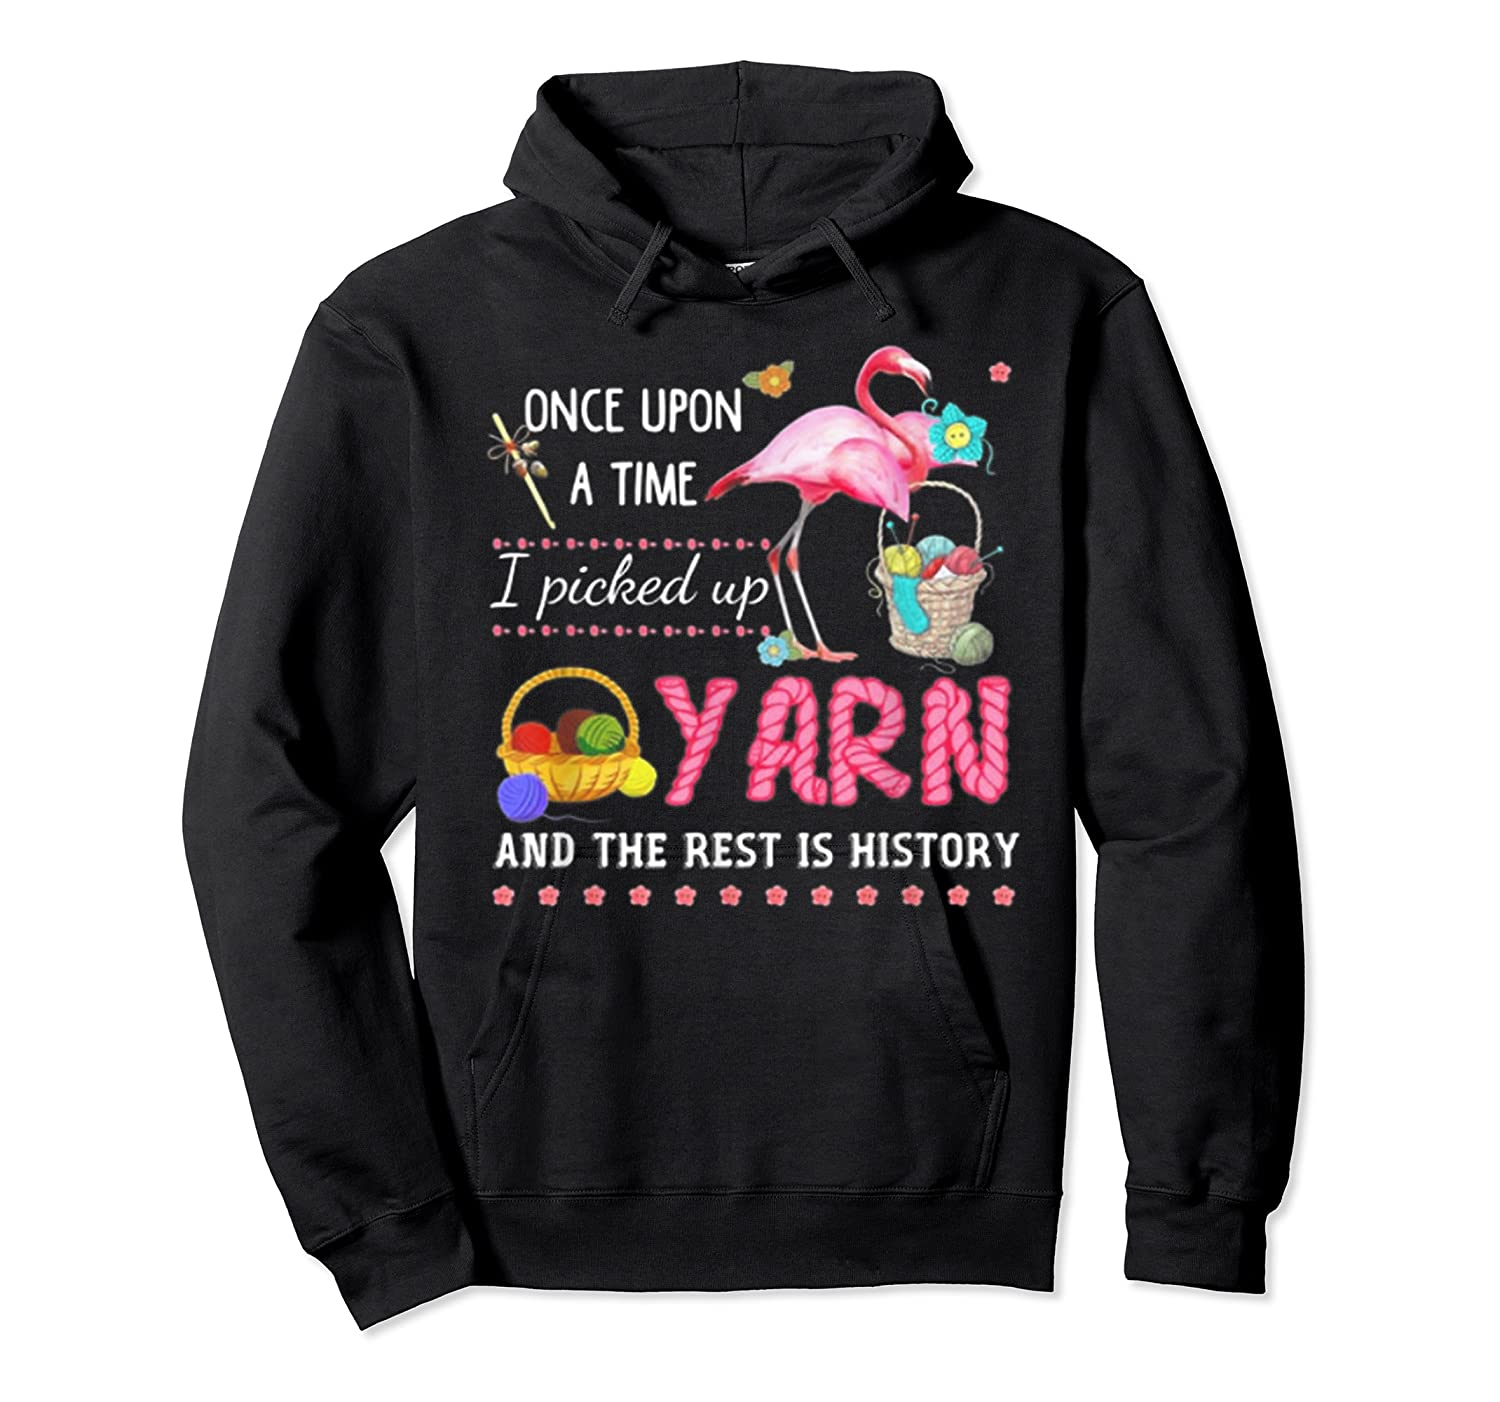 Once Upon A Time I Pickep Up Yarn And The Rest Is History Shirts Unisex Pullover Hoodie